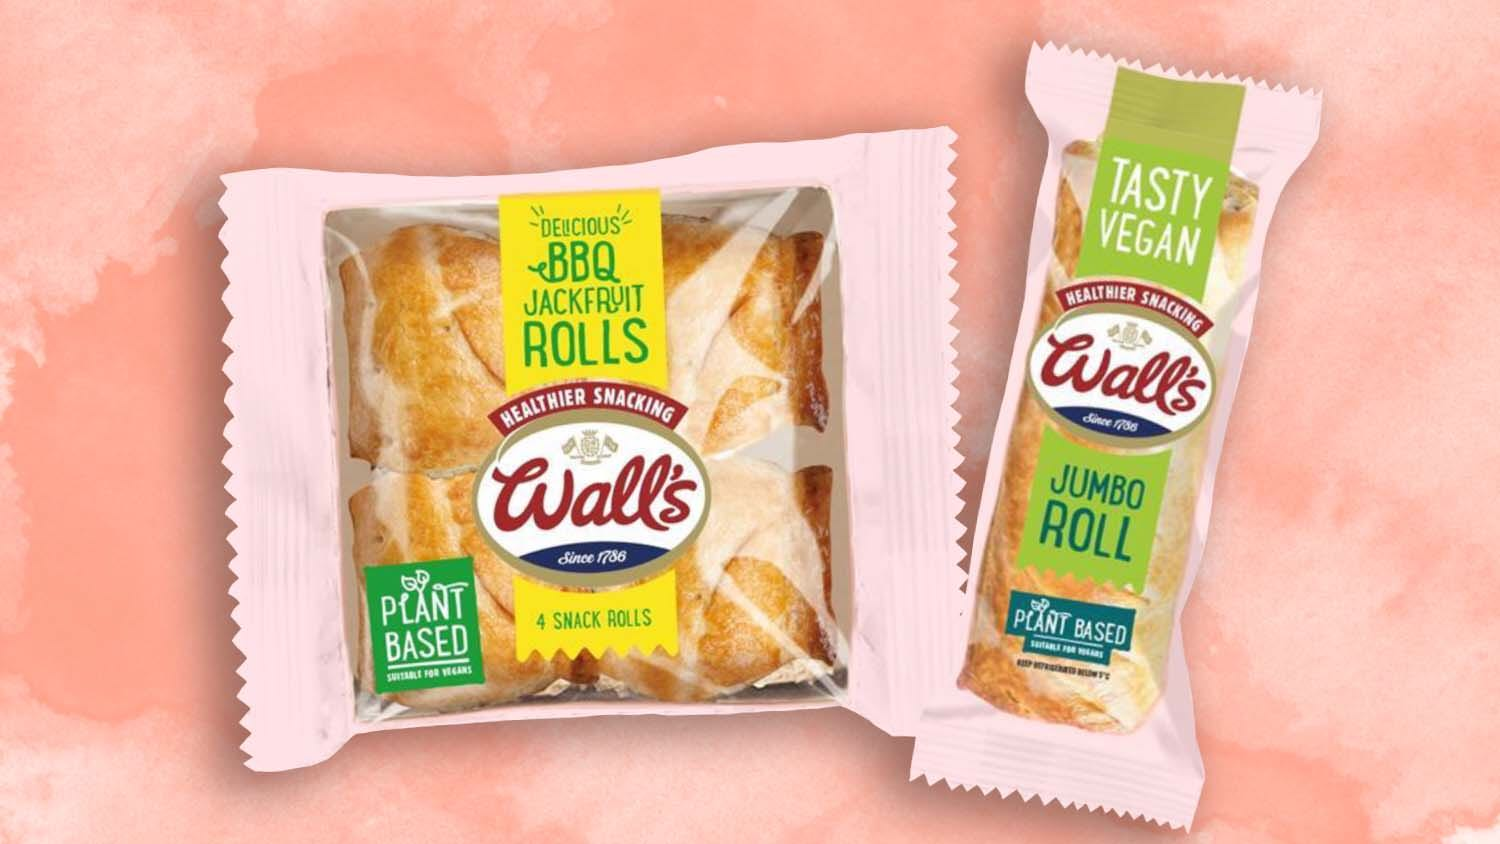 Wall's Just Launched Jumbo Vegan Sausage and Jackfruit Rolls